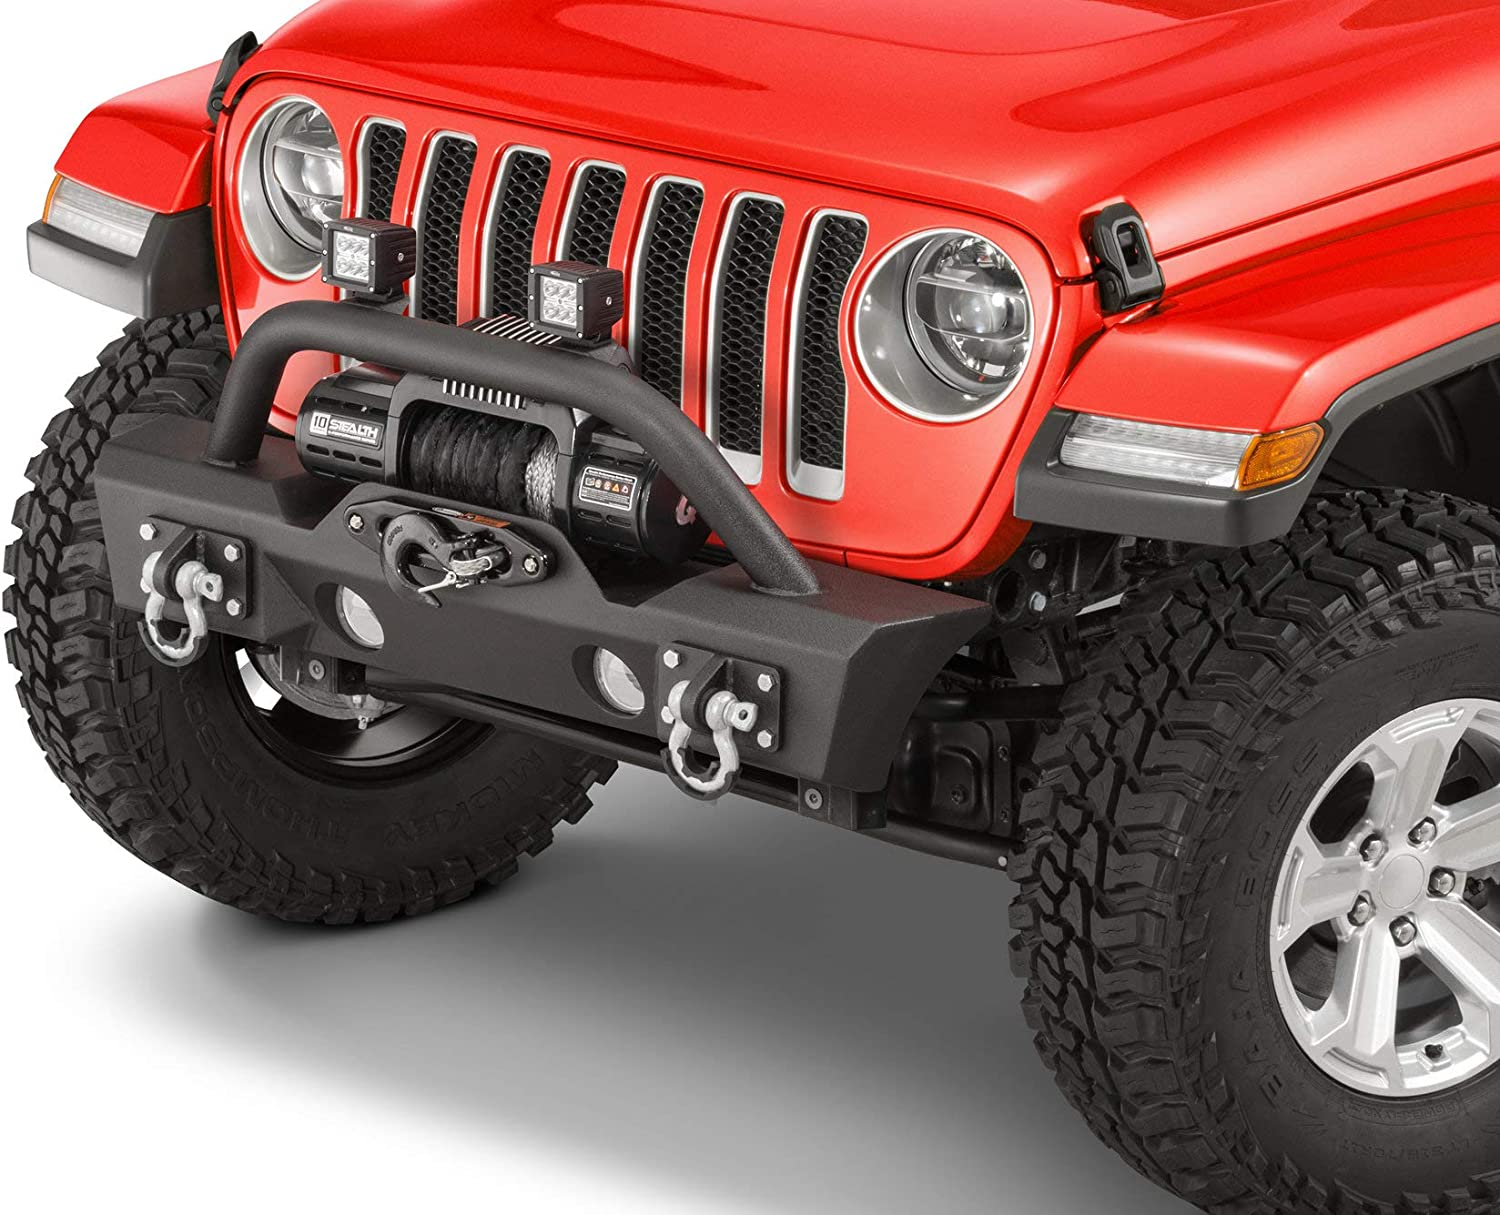 TACTIK HD Stubby Front Bumper - Fits Jeep Wrangler JL and Gladiator JT